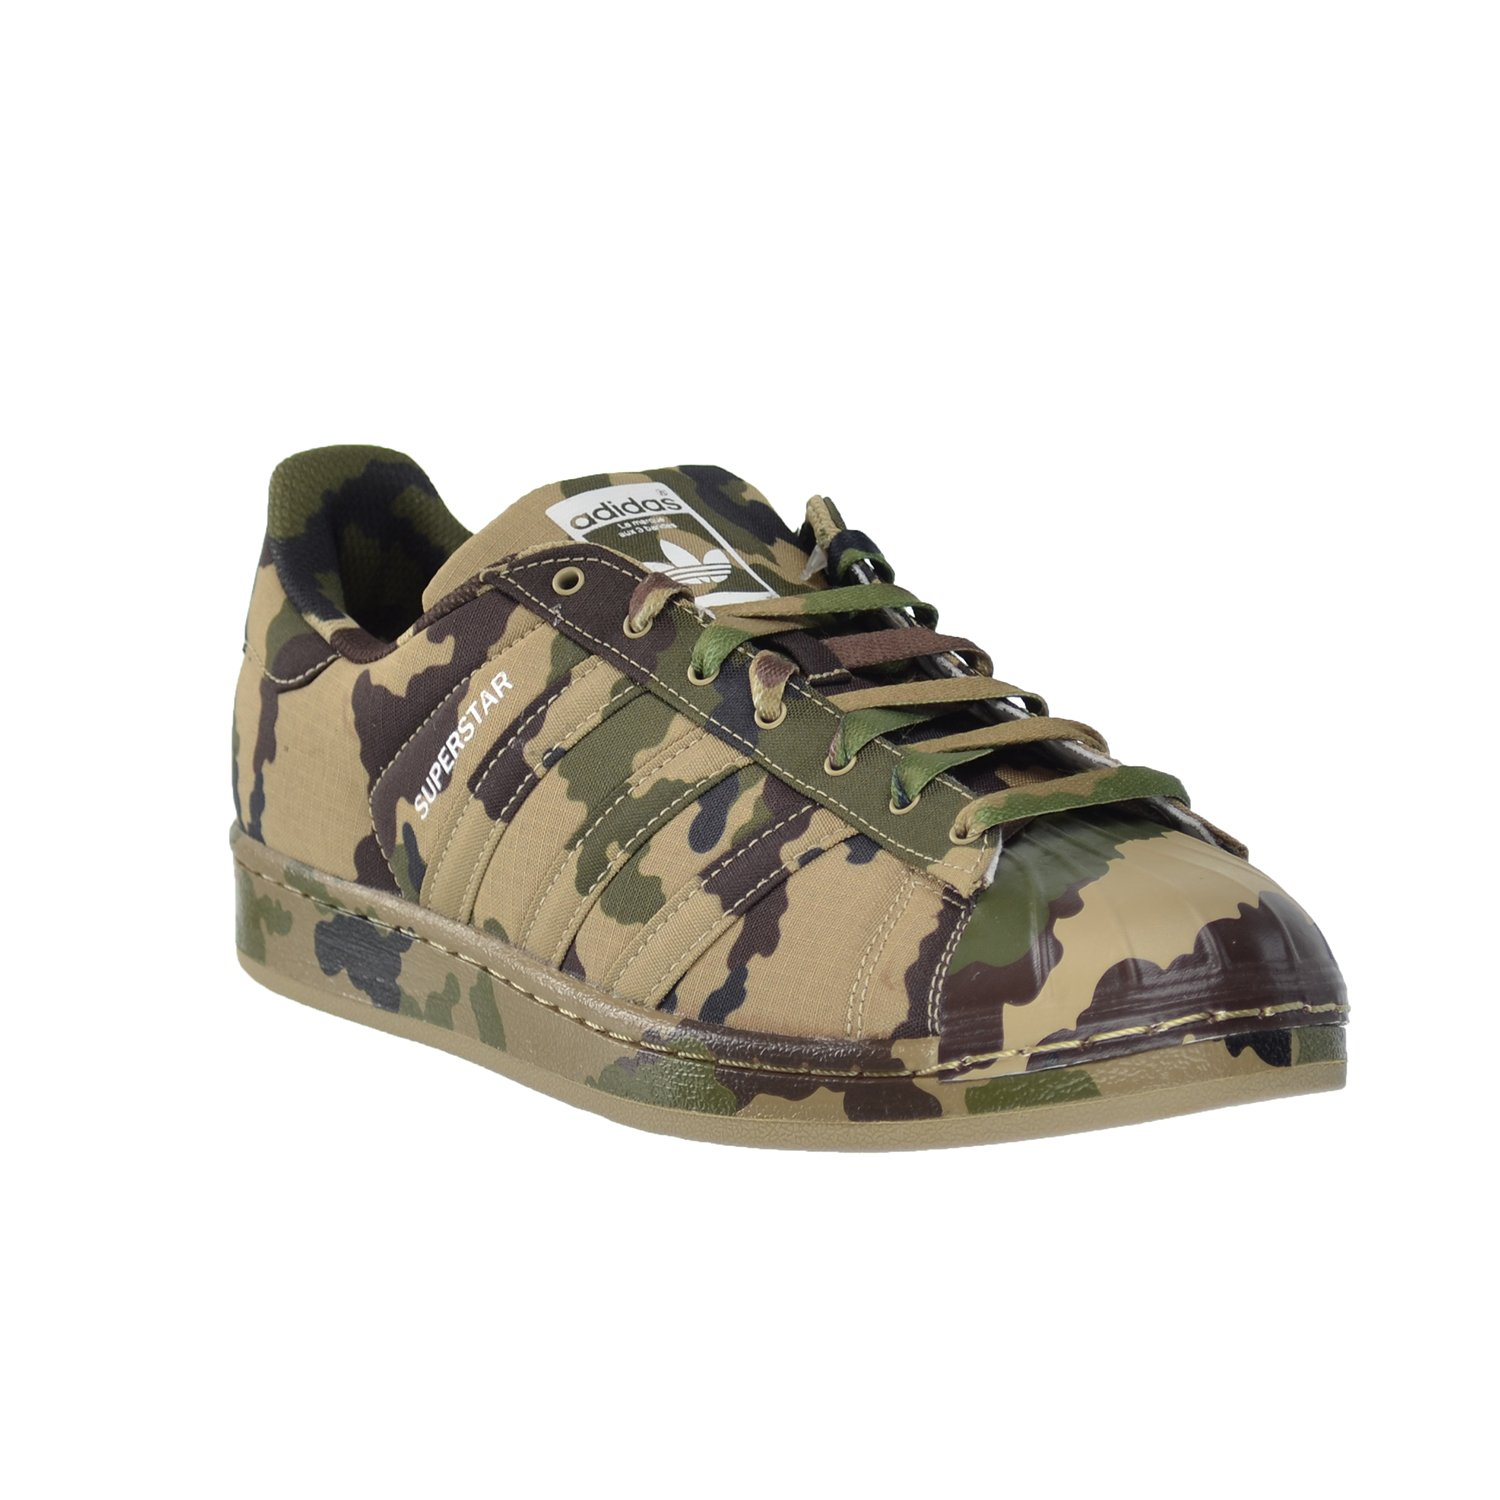 reputable site 809b0 cdf6c Amazon.com   adidas Superstar Graphic Pack Hemp Camo  Black FTW White  b35403 (9.5 D(M) US)   Fashion Sneakers